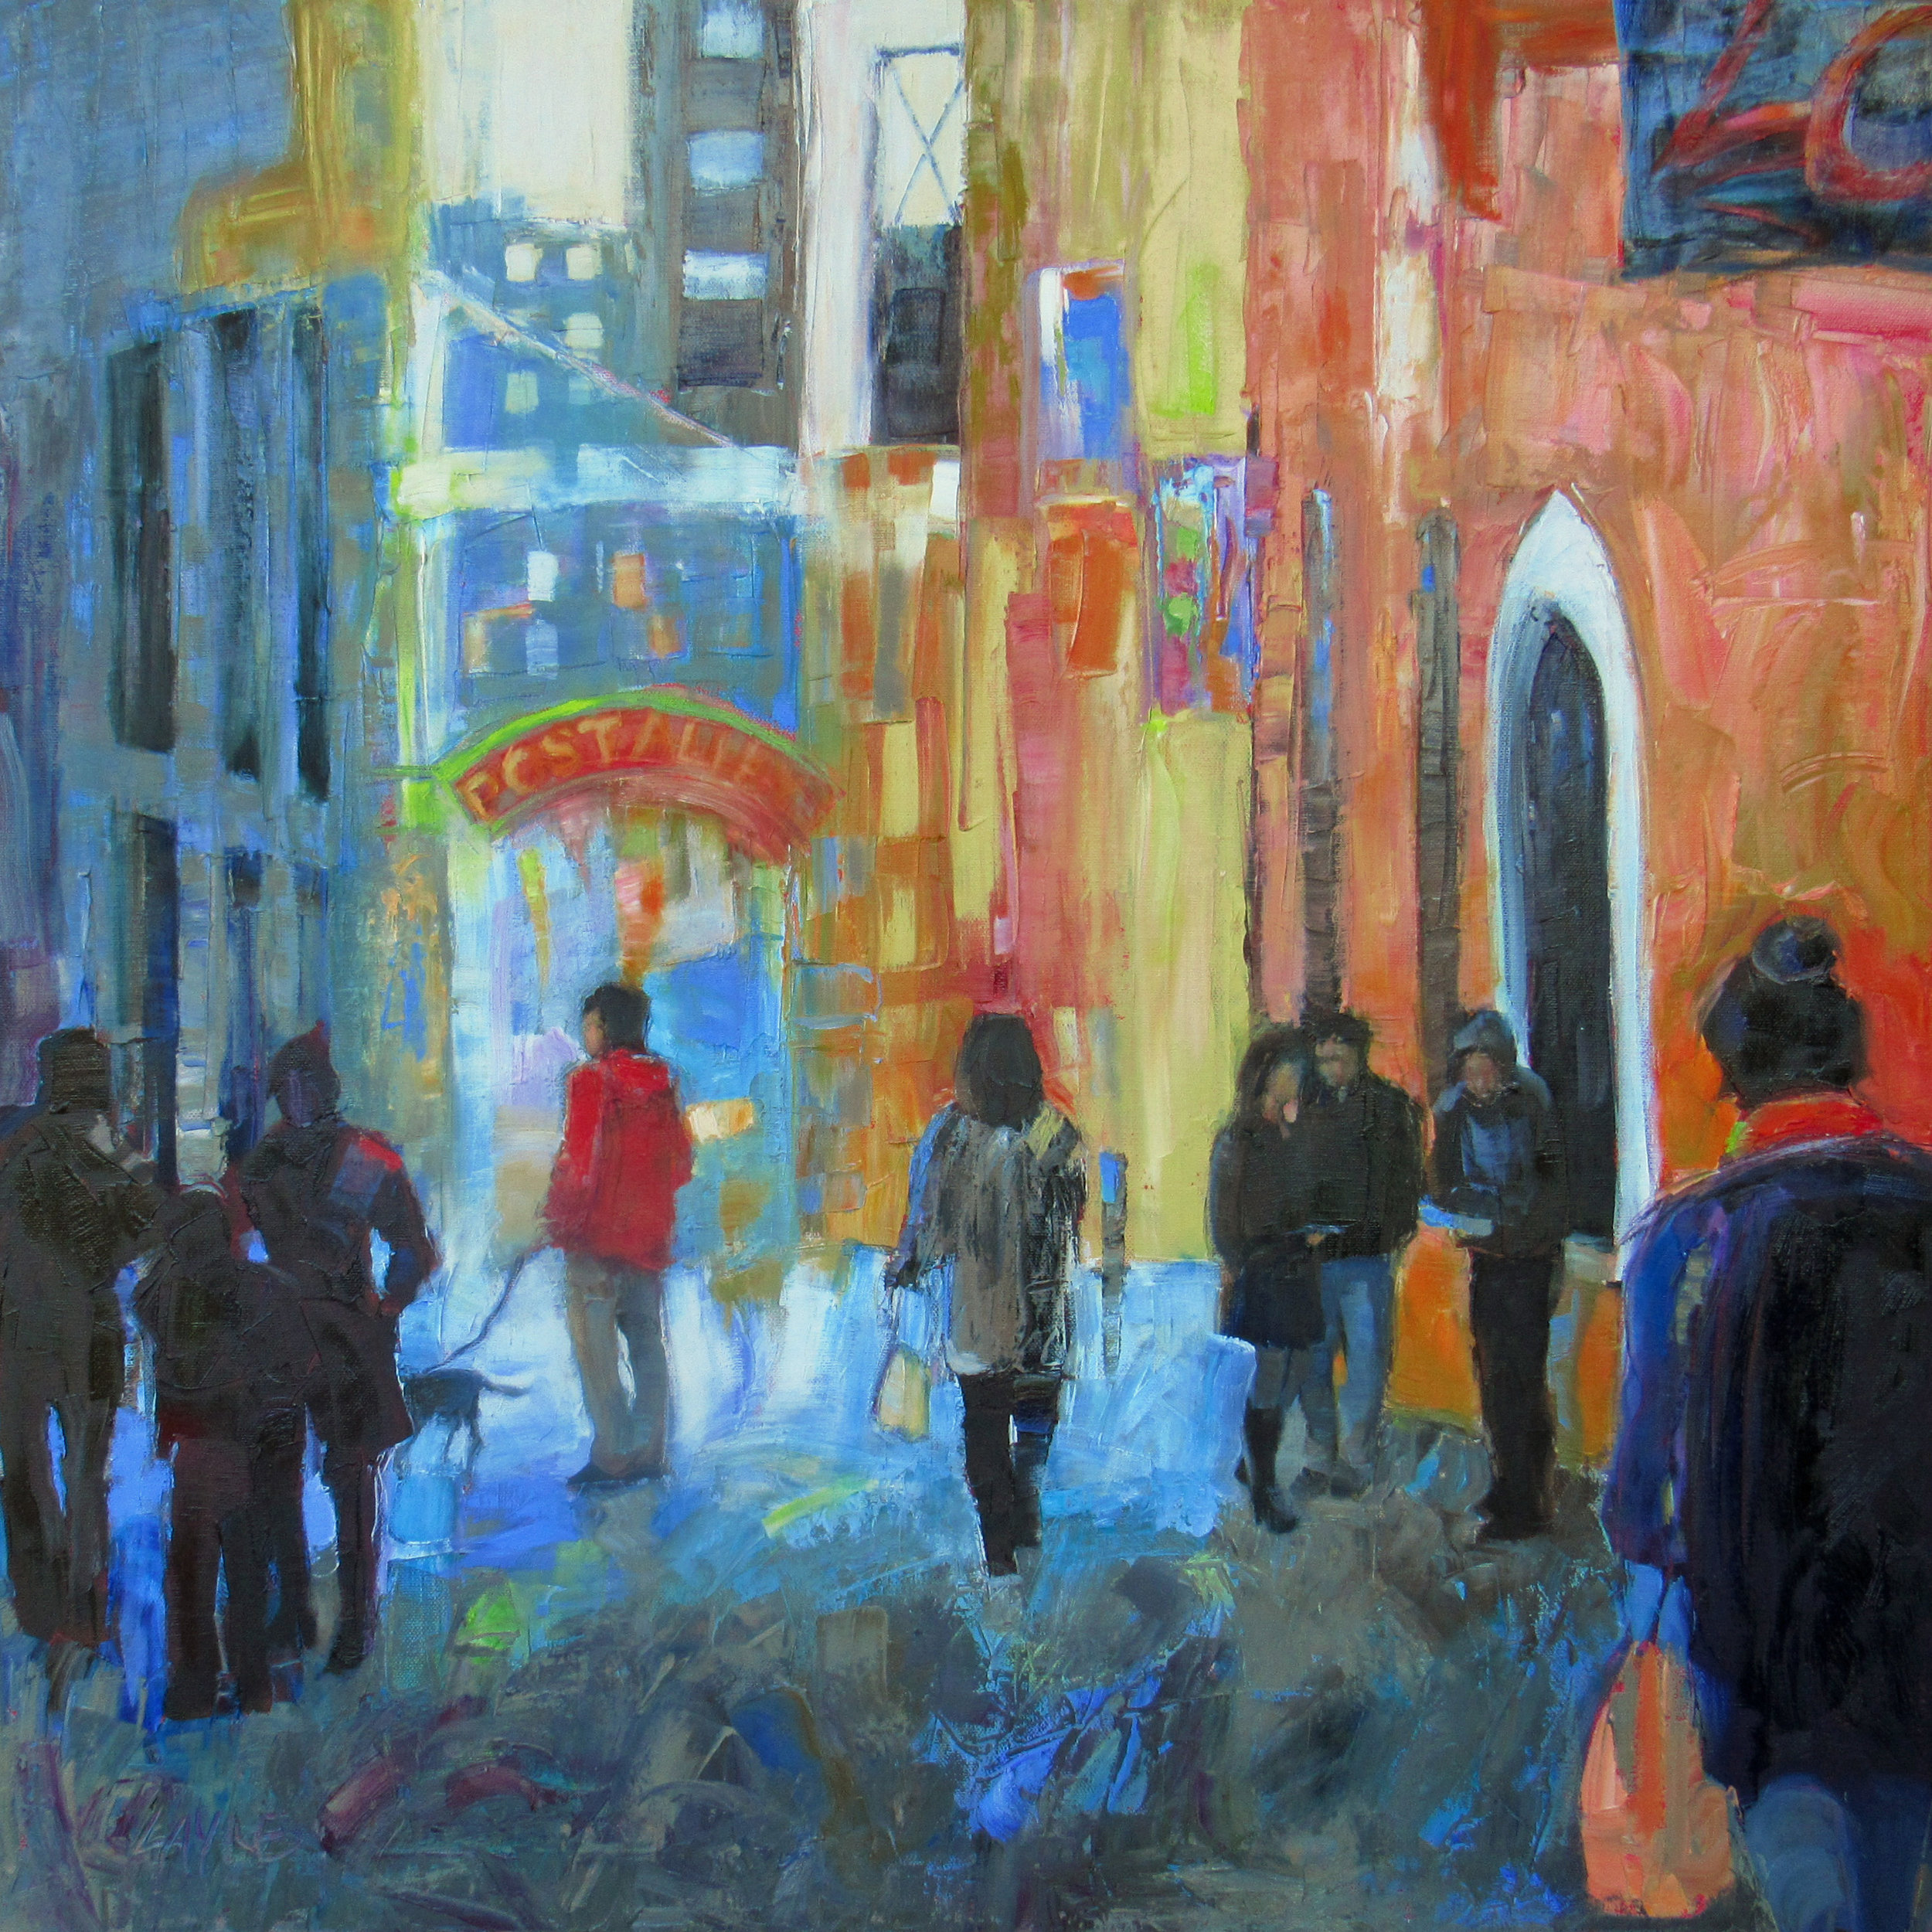 Post Alley#Oil on canvas#30x30#SOLD